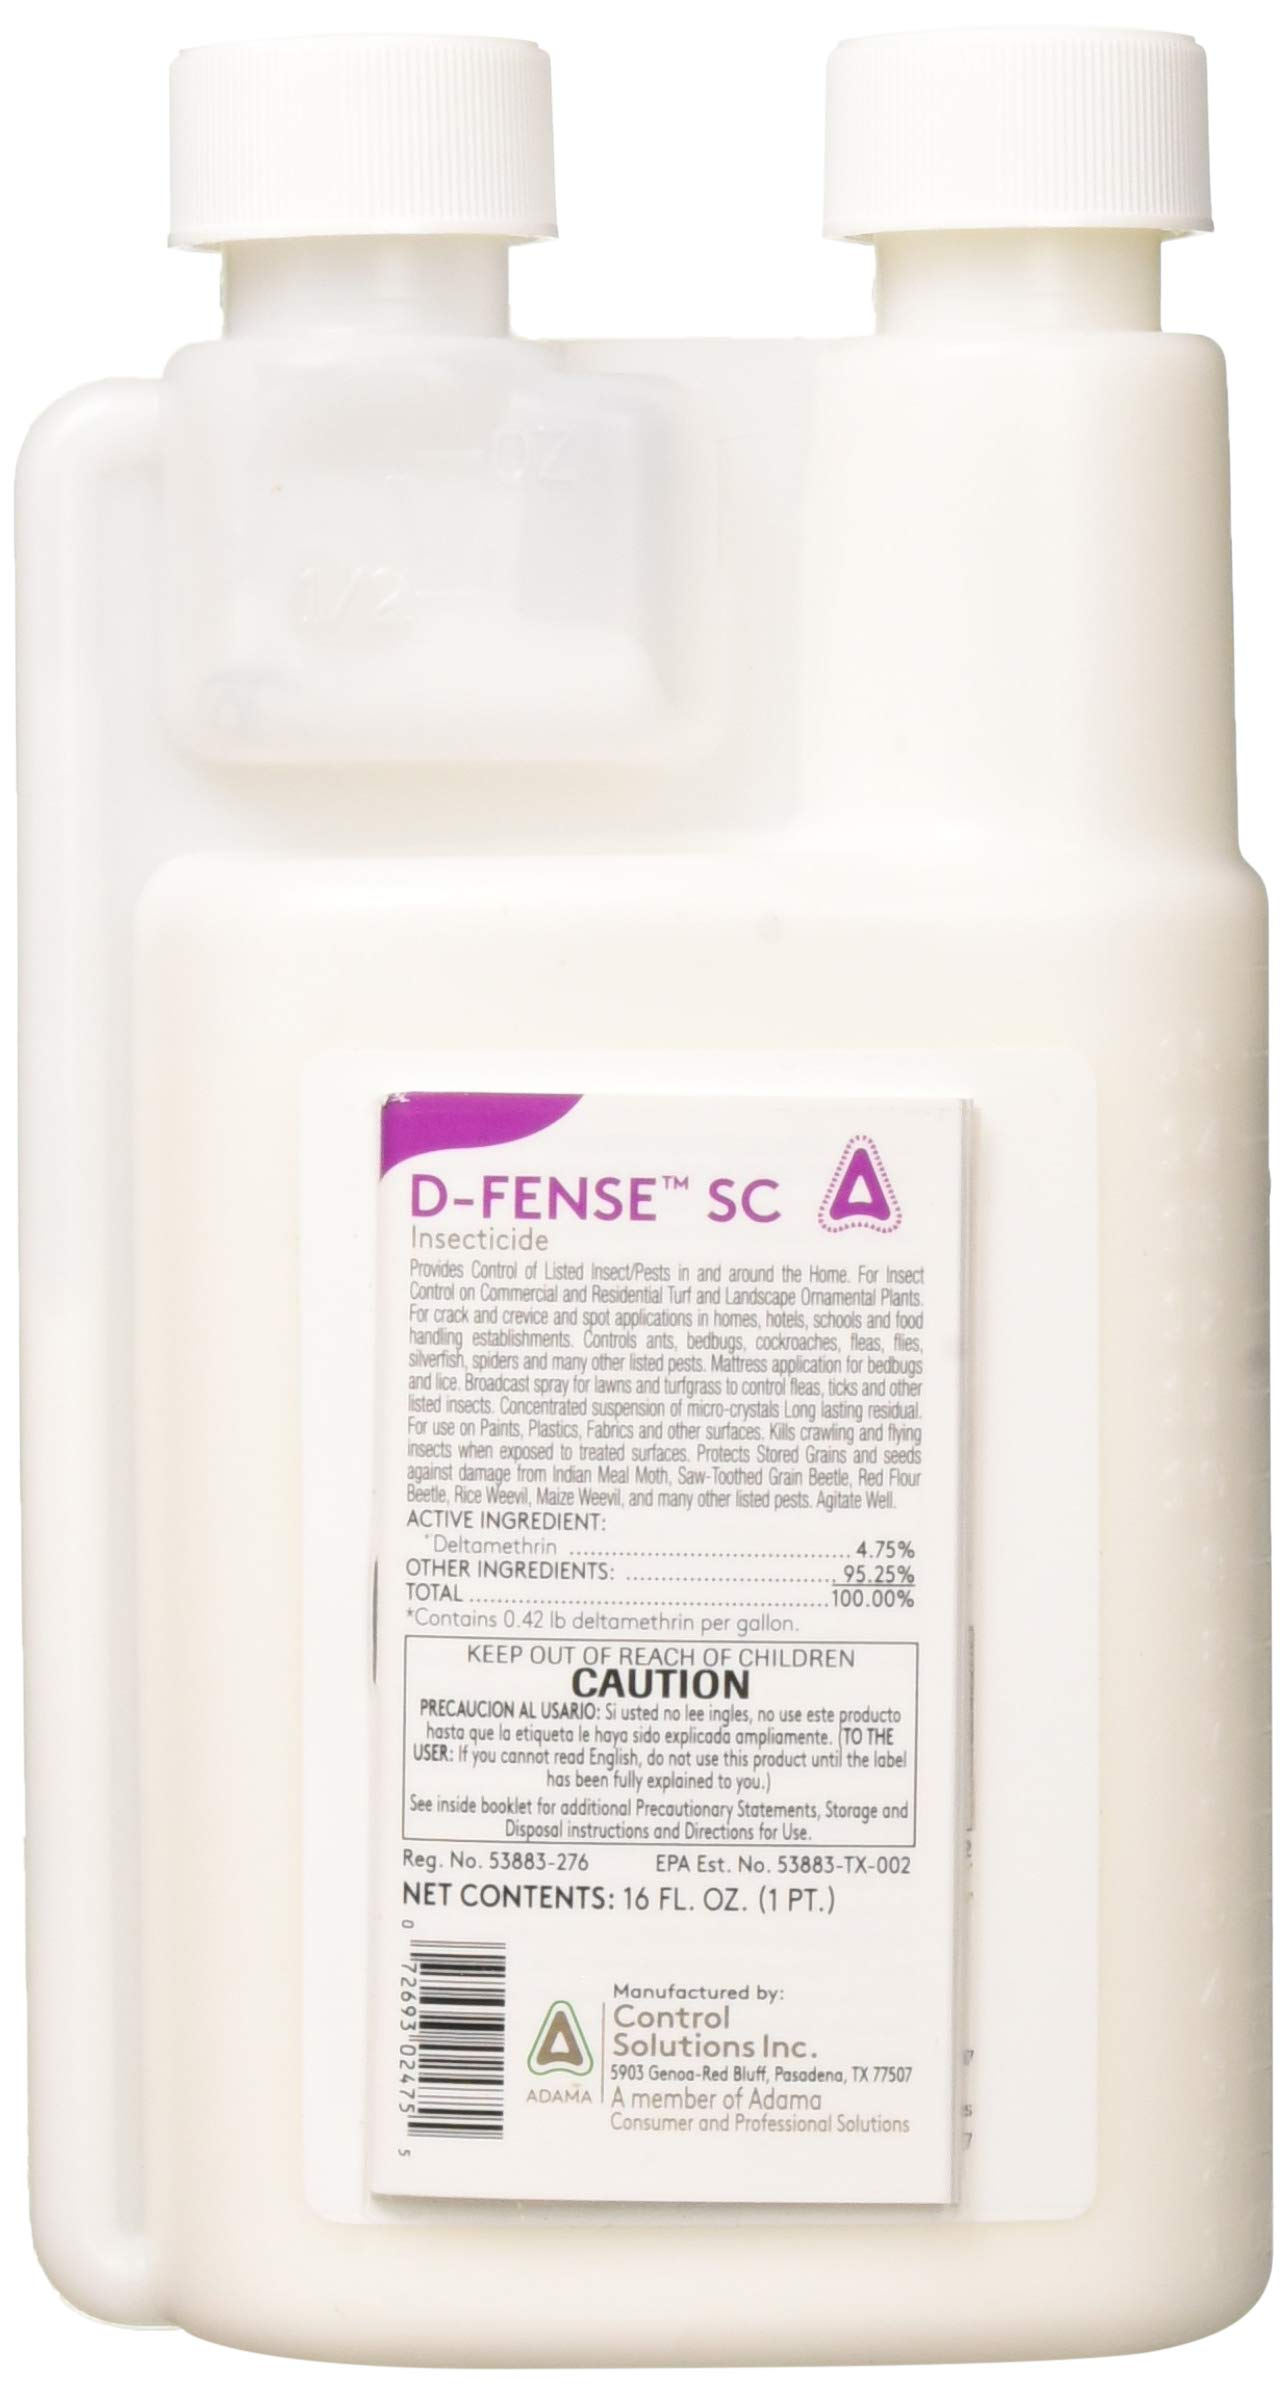 CSI - 10036000373902 - D-FENCE SC - Insecticide - 16oz by Control Solutions